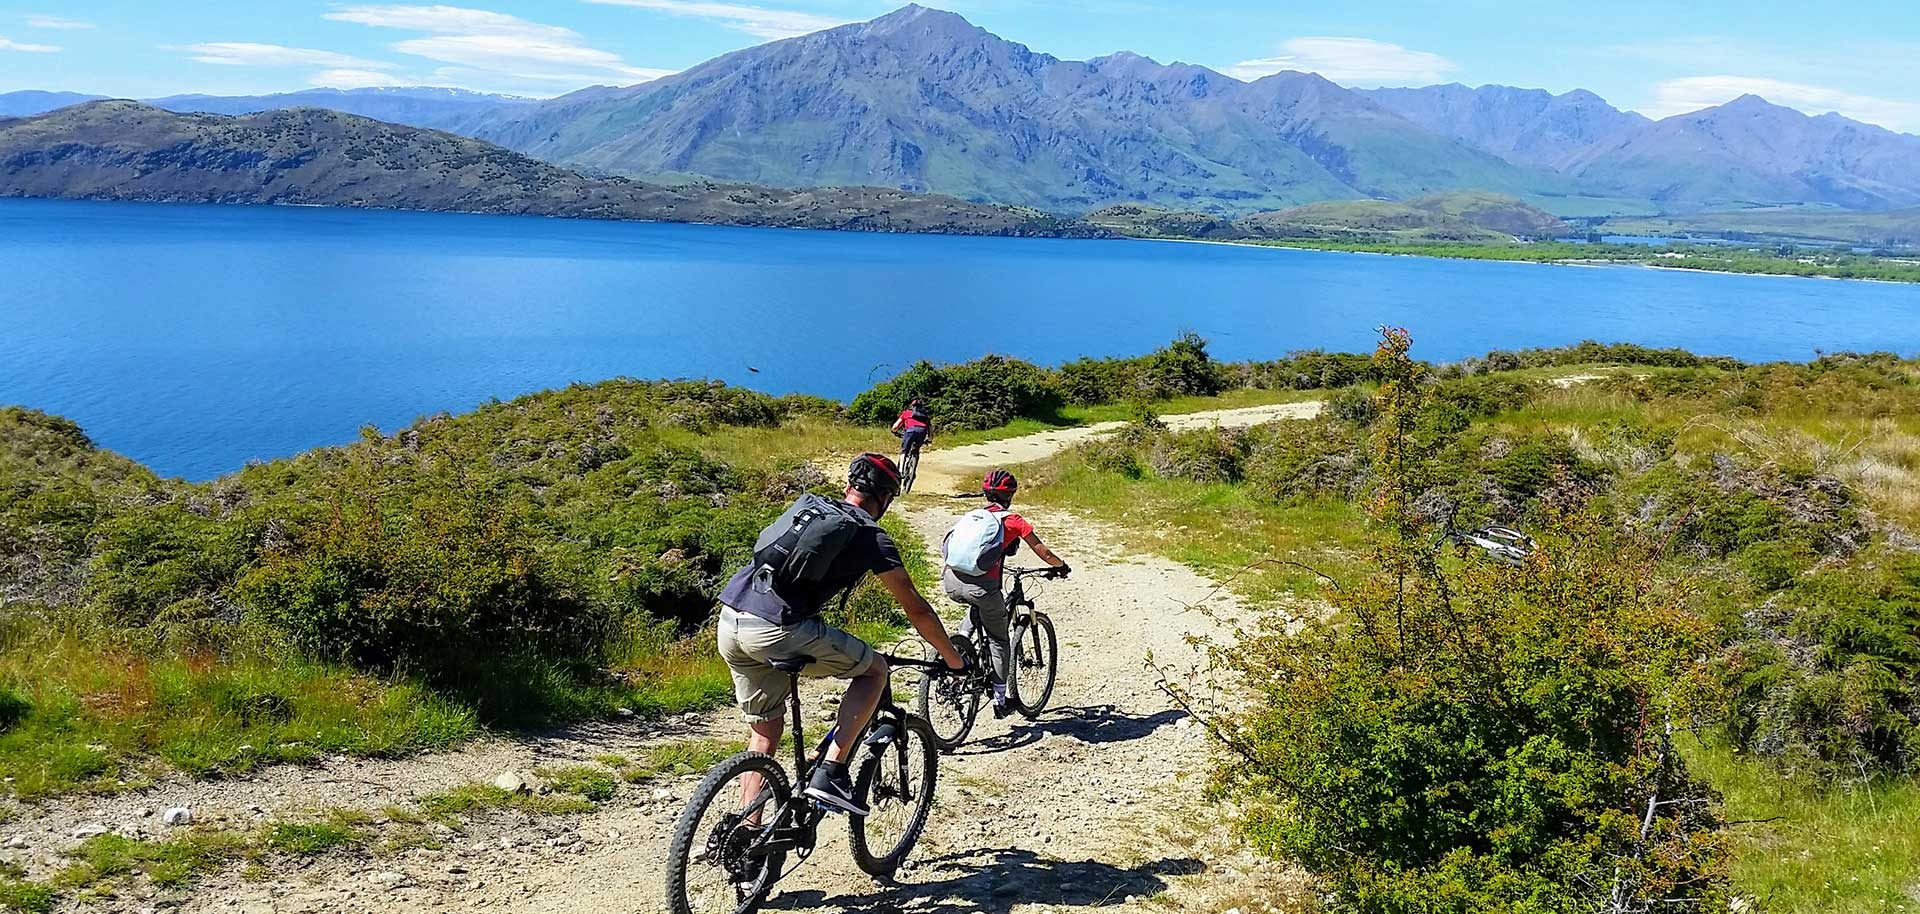 Boat and Bike Tour | Discover Wanaka | Guided Tours